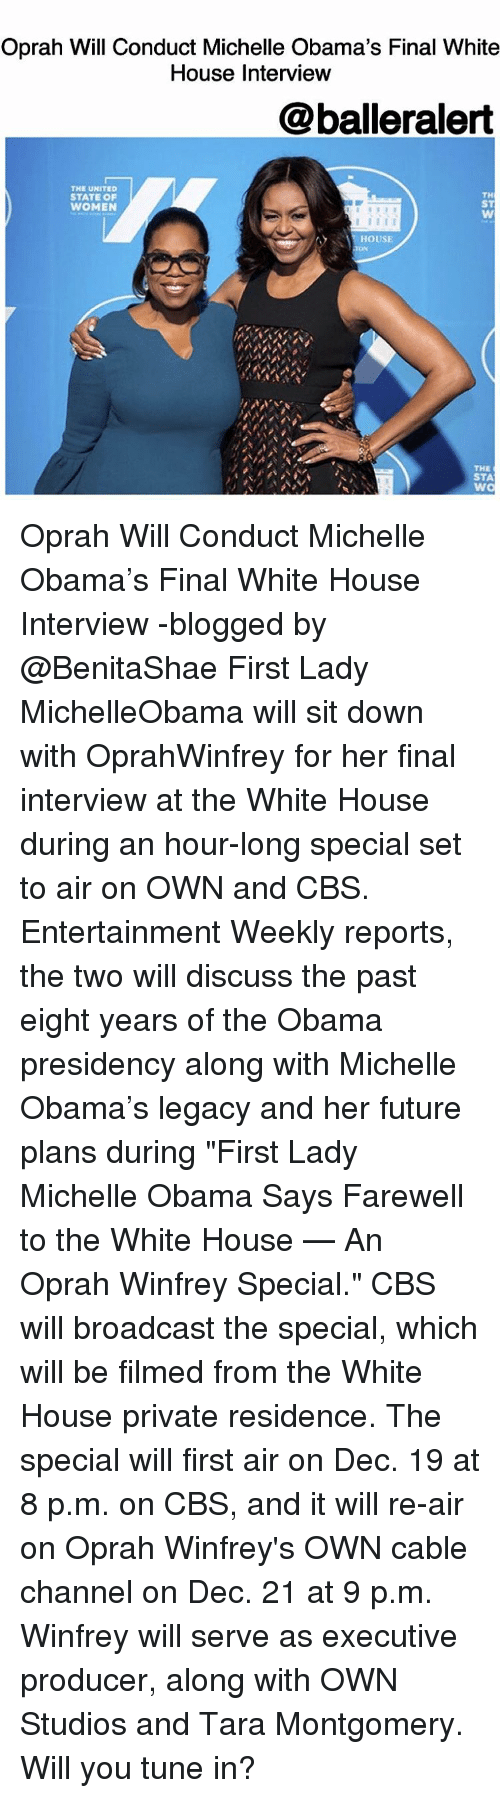 "Memes, Michelle Obama, and Oprah Winfrey: Oprah Will Conduct Michelle Obama's Final White  House Interview  @balleralert  THE UNITED  TH  STATE OF  ST  WOMEN  HOUSE  STA Oprah Will Conduct Michelle Obama's Final White House Interview -blogged by @BenitaShae First Lady MichelleObama will sit down with OprahWinfrey for her final interview at the White House during an hour-long special set to air on OWN and CBS. Entertainment Weekly reports, the two will discuss the past eight years of the Obama presidency along with Michelle Obama's legacy and her future plans during ""First Lady Michelle Obama Says Farewell to the White House — An Oprah Winfrey Special."" CBS will broadcast the special, which will be filmed from the White House private residence. The special will first air on Dec. 19 at 8 p.m. on CBS, and it will re-air on Oprah Winfrey's OWN cable channel on Dec. 21 at 9 p.m. Winfrey will serve as executive producer, along with OWN Studios and Tara Montgomery. Will you tune in?"